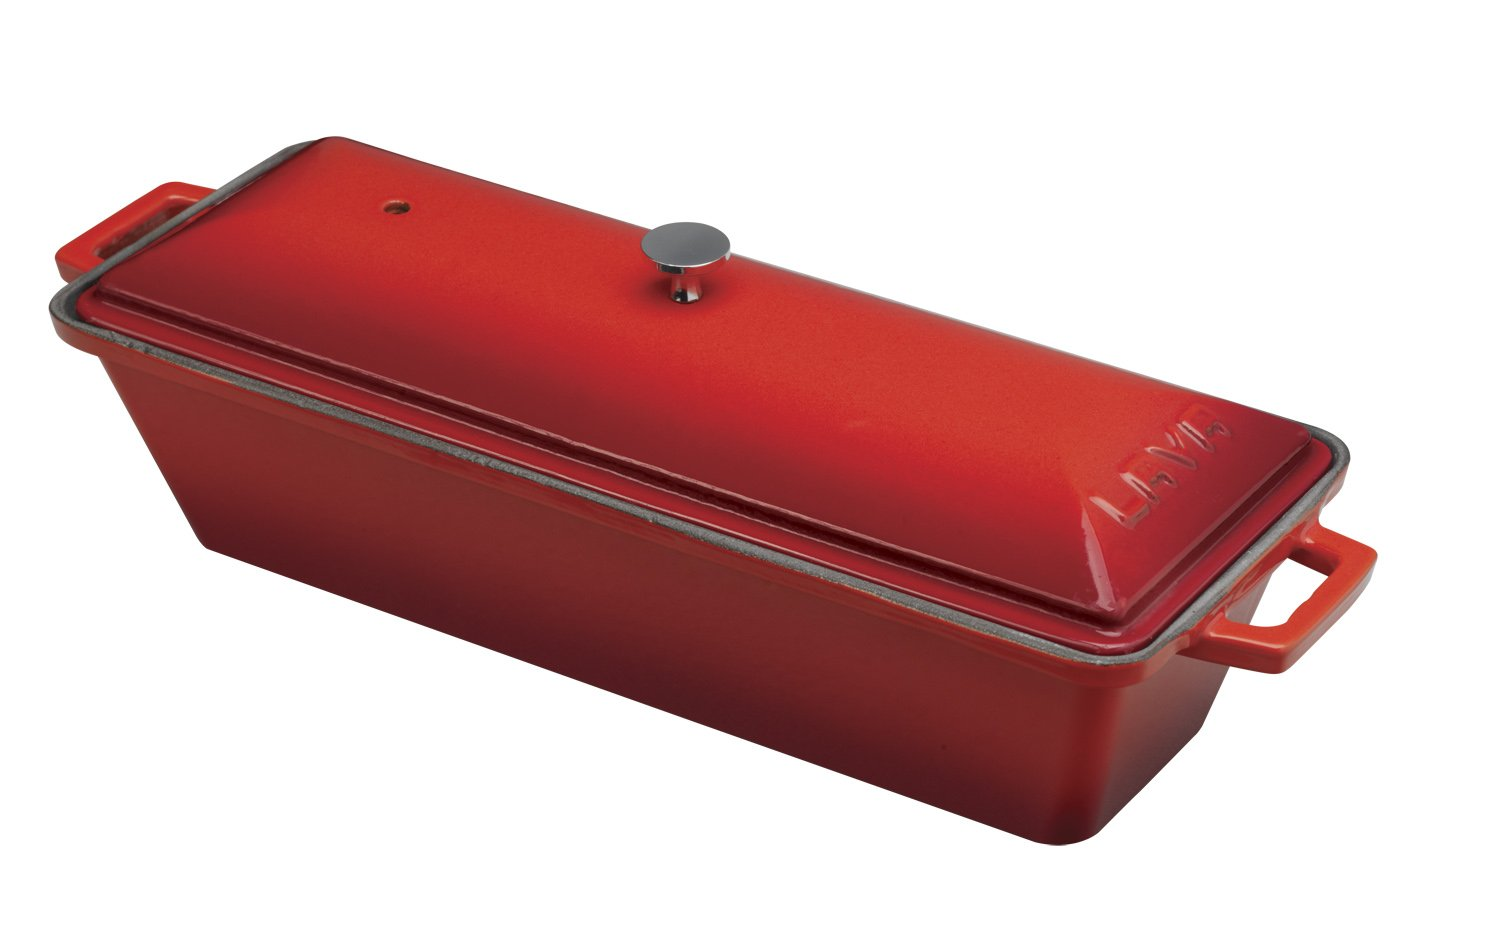 Lava Enameled cast-iron Bread /テリーヌパン、3 by 10-inch 3 x 10 inch レッド LVPEK826RED B00DNGSDRK カイエン レッド カイエン レッド